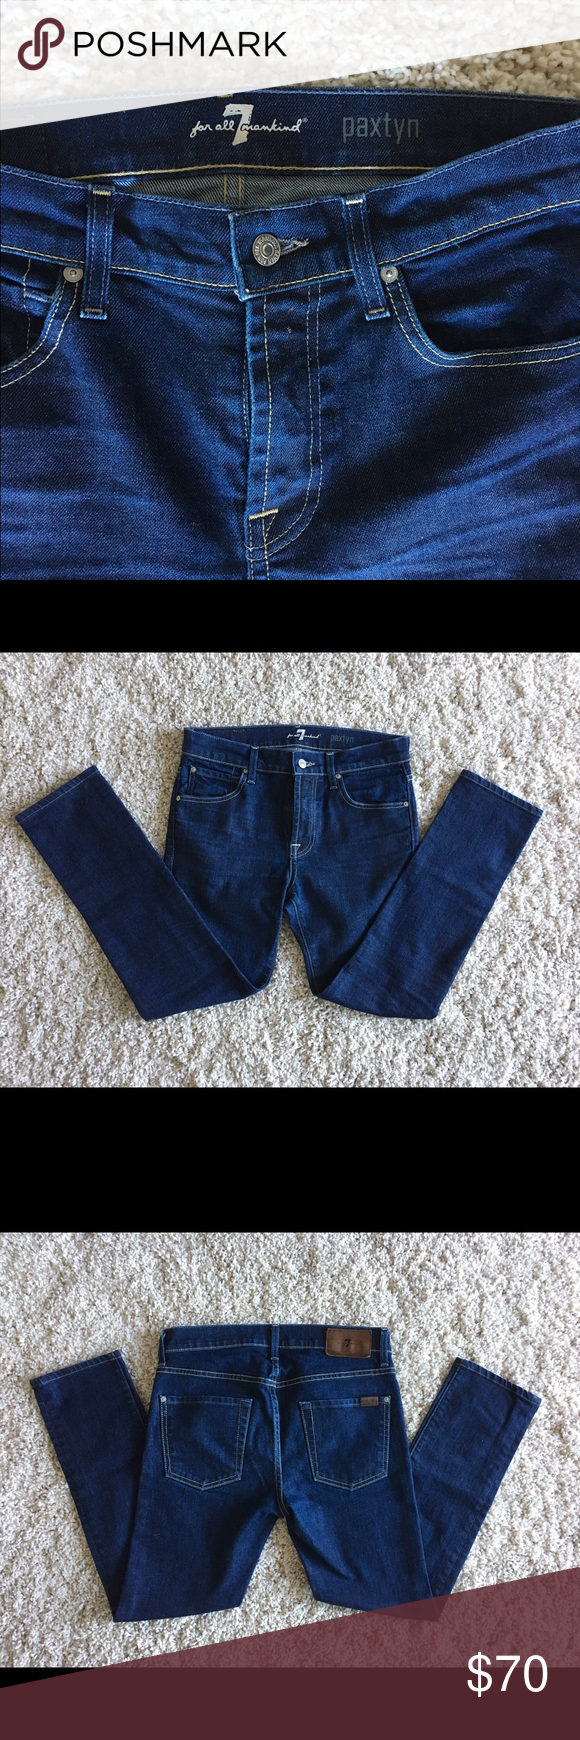 7 For All Mankind Paxton Jeans 7 For All Mankind Paxtyn Jeans. Classic jeans design with 5 pockets system. Comfort both inside and out along with great fabric recovery. 7 For All Mankind Jeans